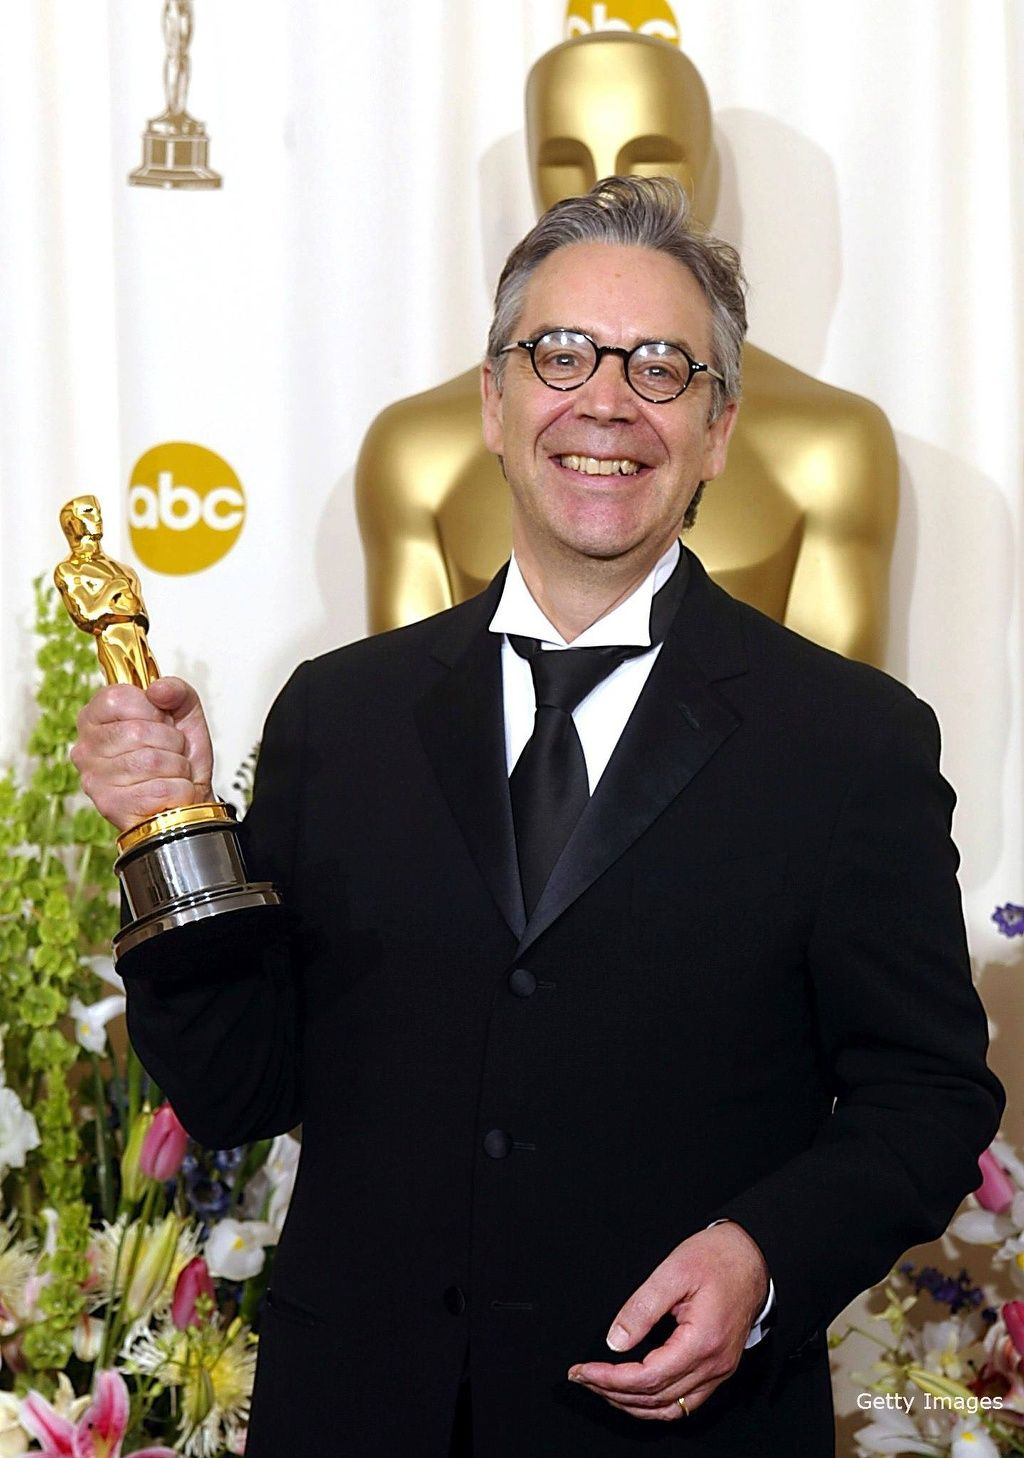 Caption: Howard Shore, Credit: Academy of Motion Picture Sciences